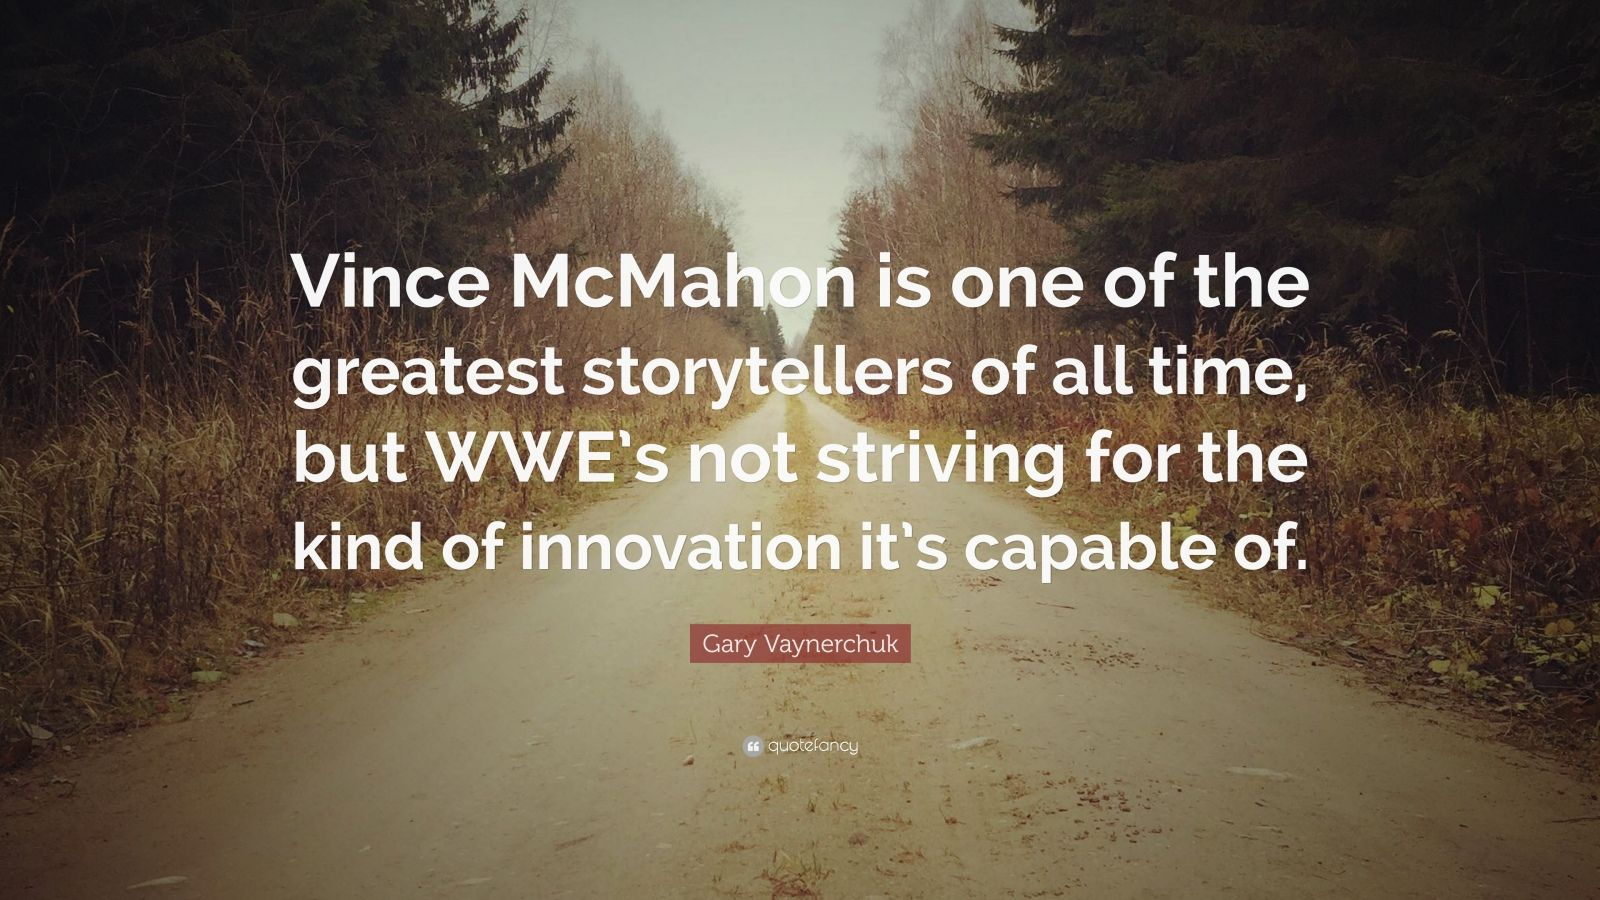 """Gary Vaynerchuk Quote: """"Vince McMahon is one of the greatest storytellers of all time, but WWE's not striving for the kind of innovation it's capable of."""""""